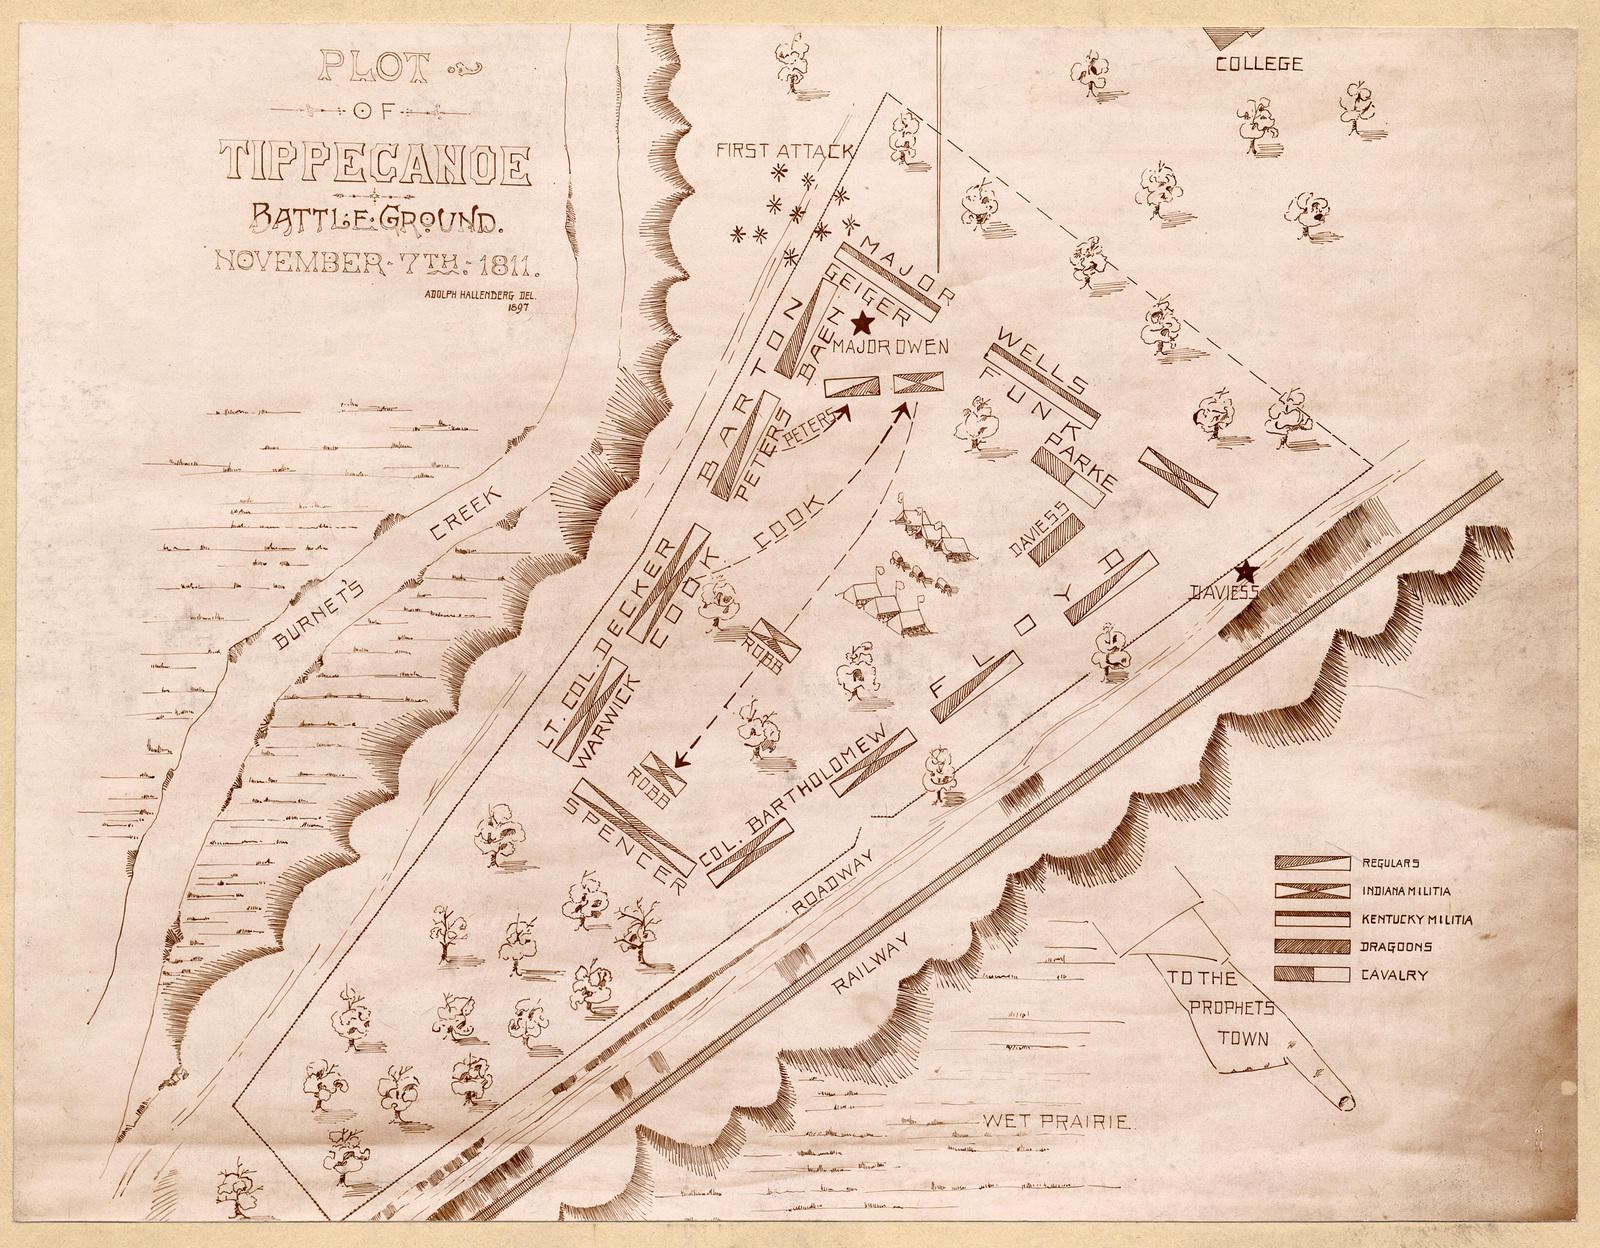 Plot of Tippecanoe battleground, November 7th, 1811